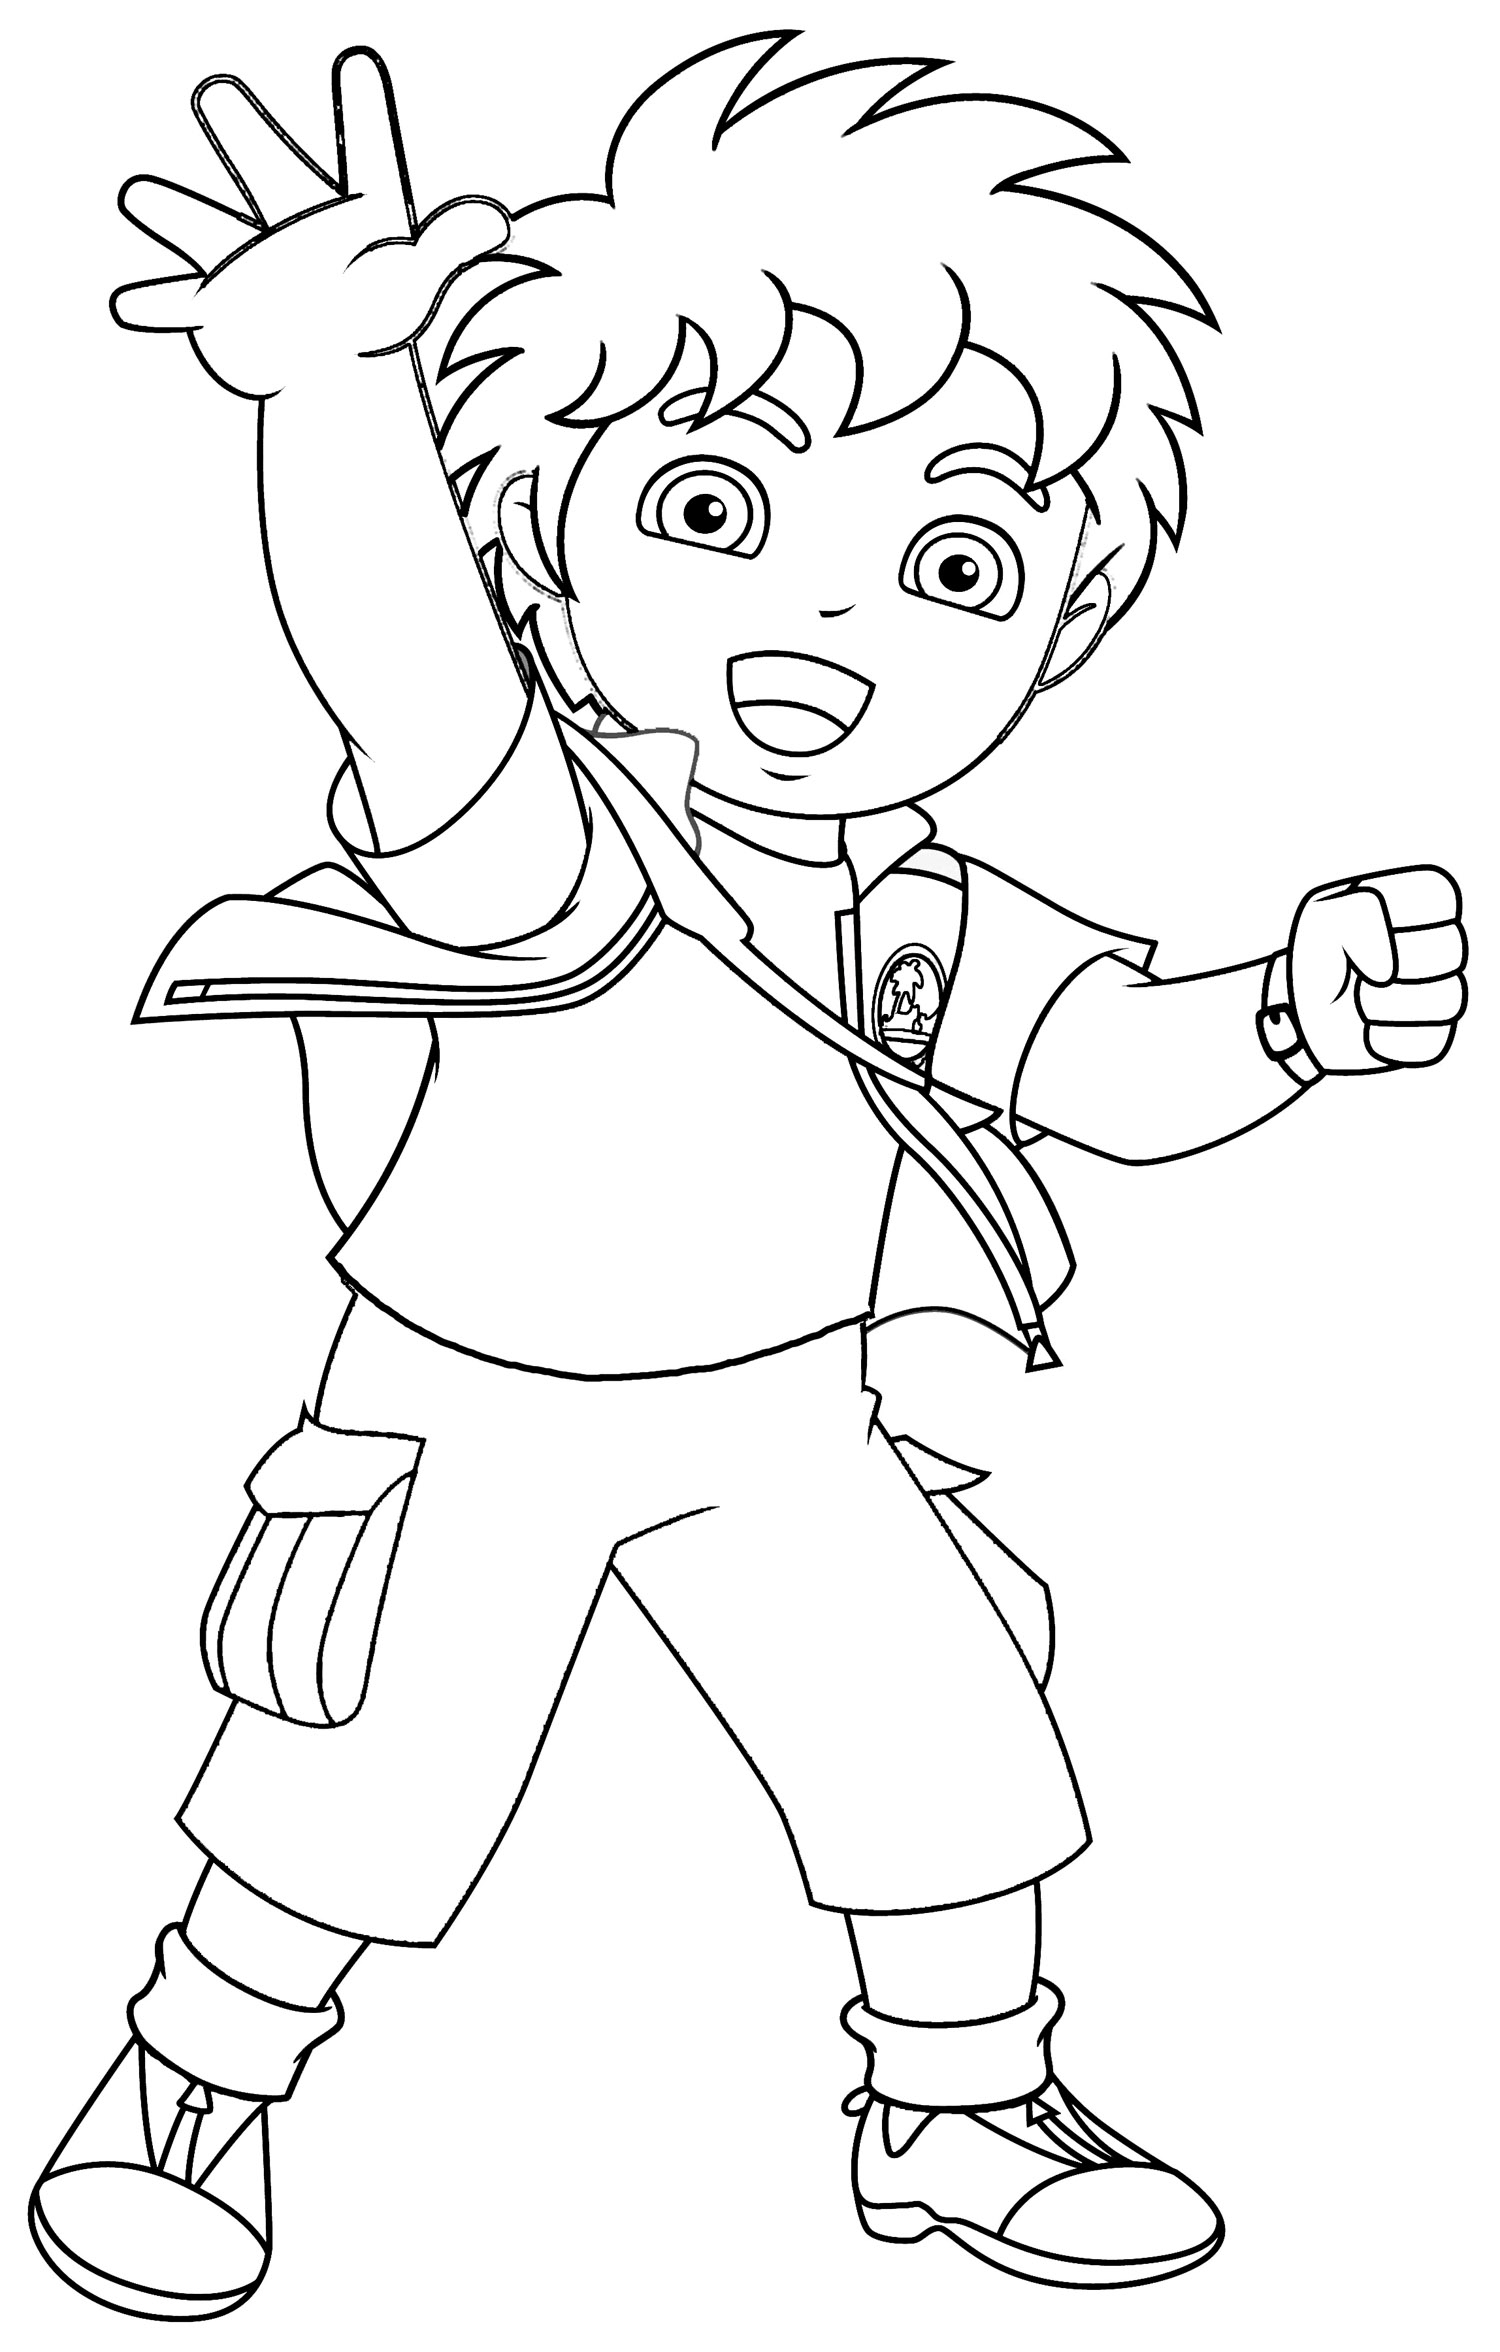 Coloring Pages for Kids Printable Free Free Coloring Books Gallery Of Nickalodeon Coloring Pages to Print